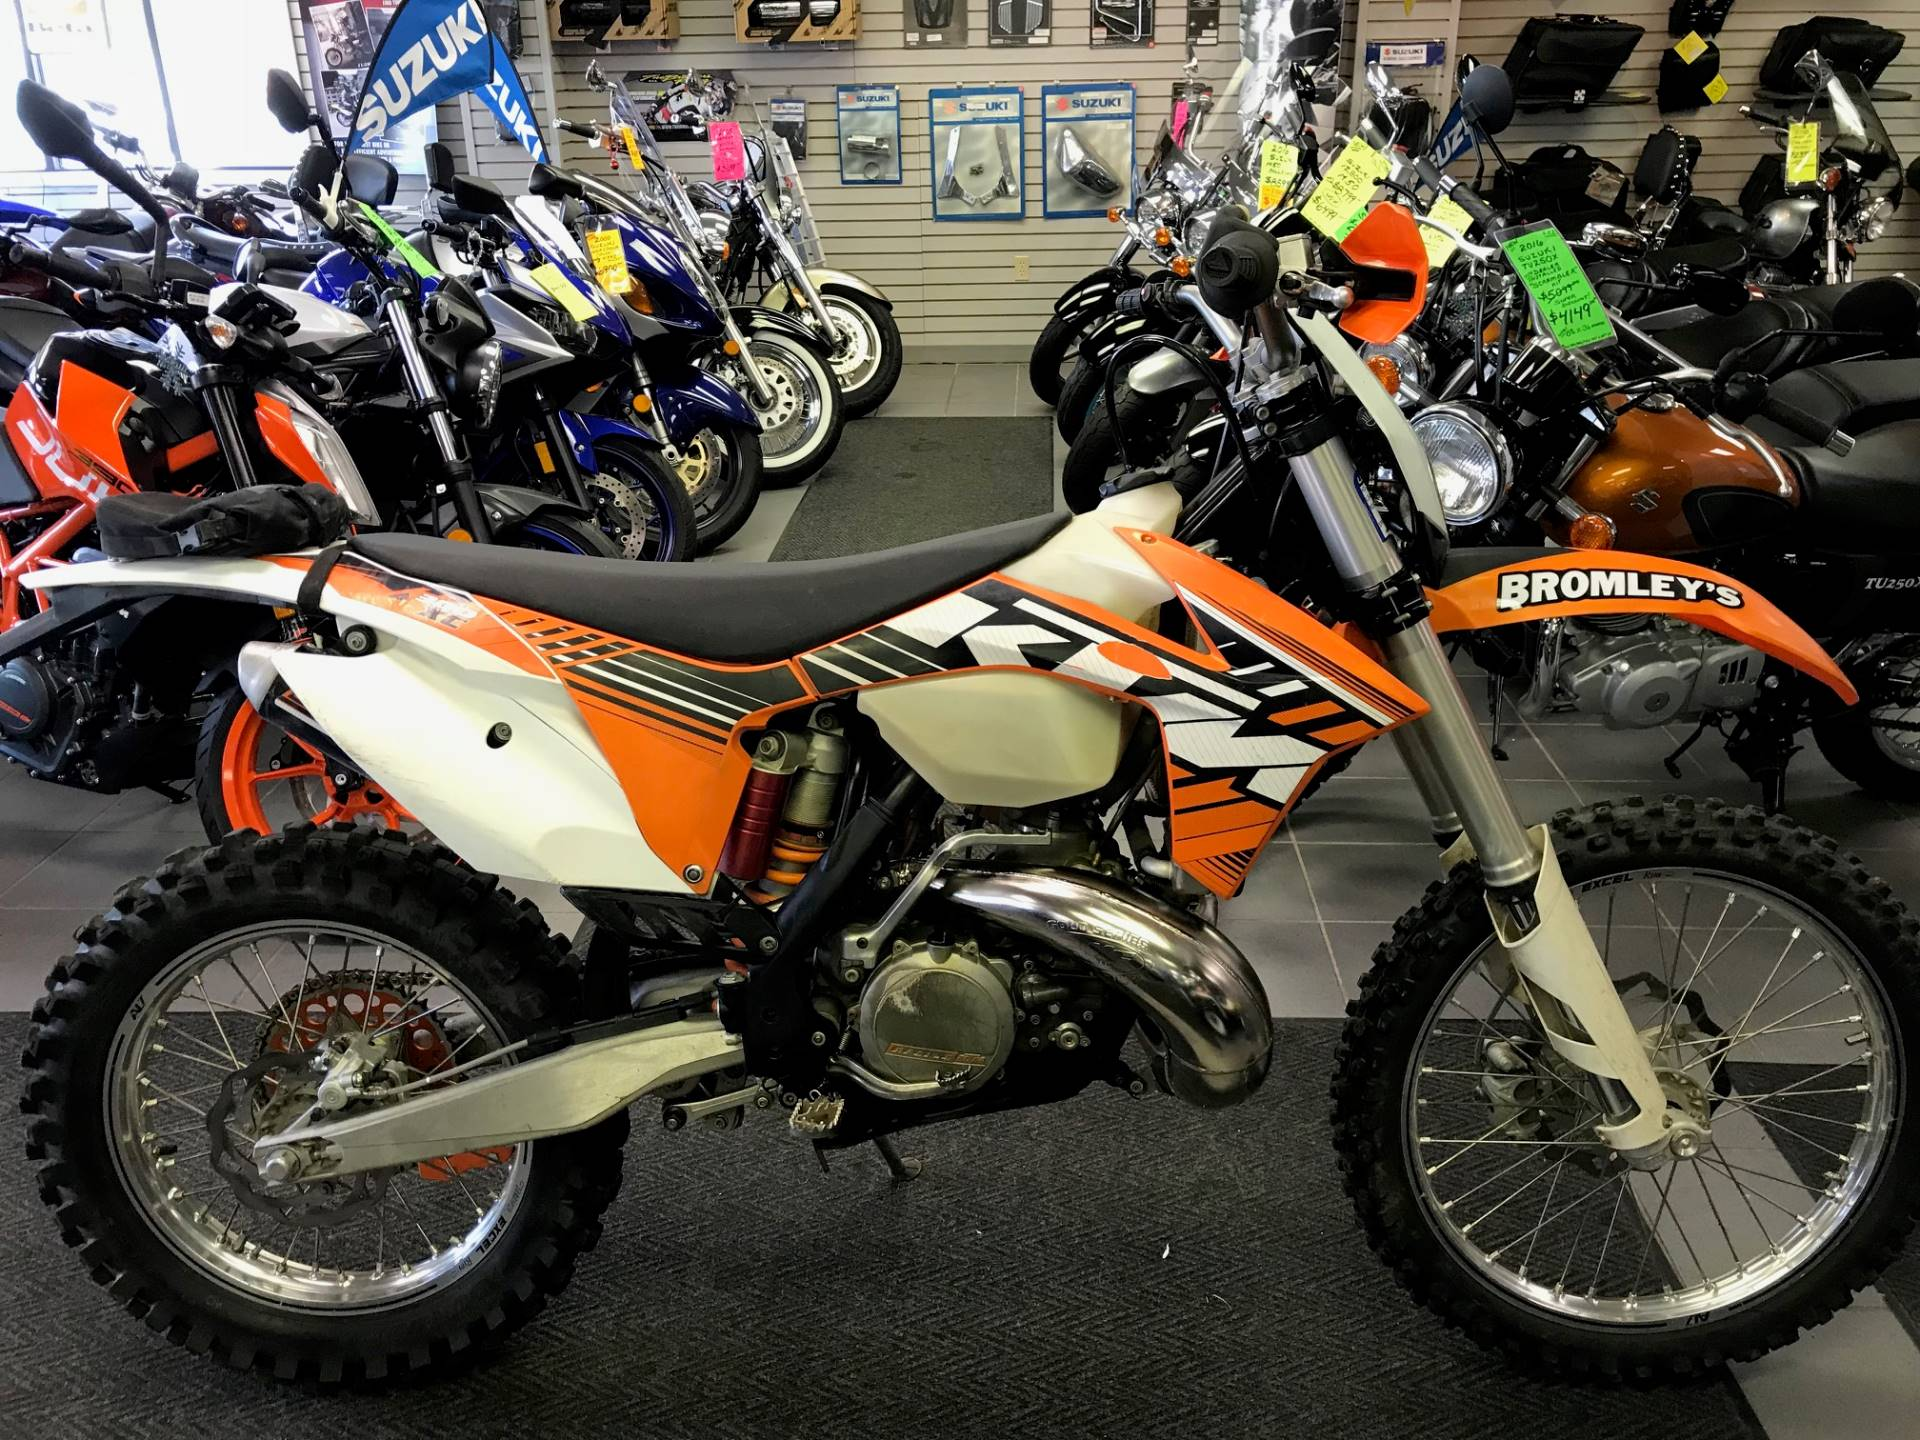 Used 2012 KTM 300 XC Motorcycles in Trevose PA